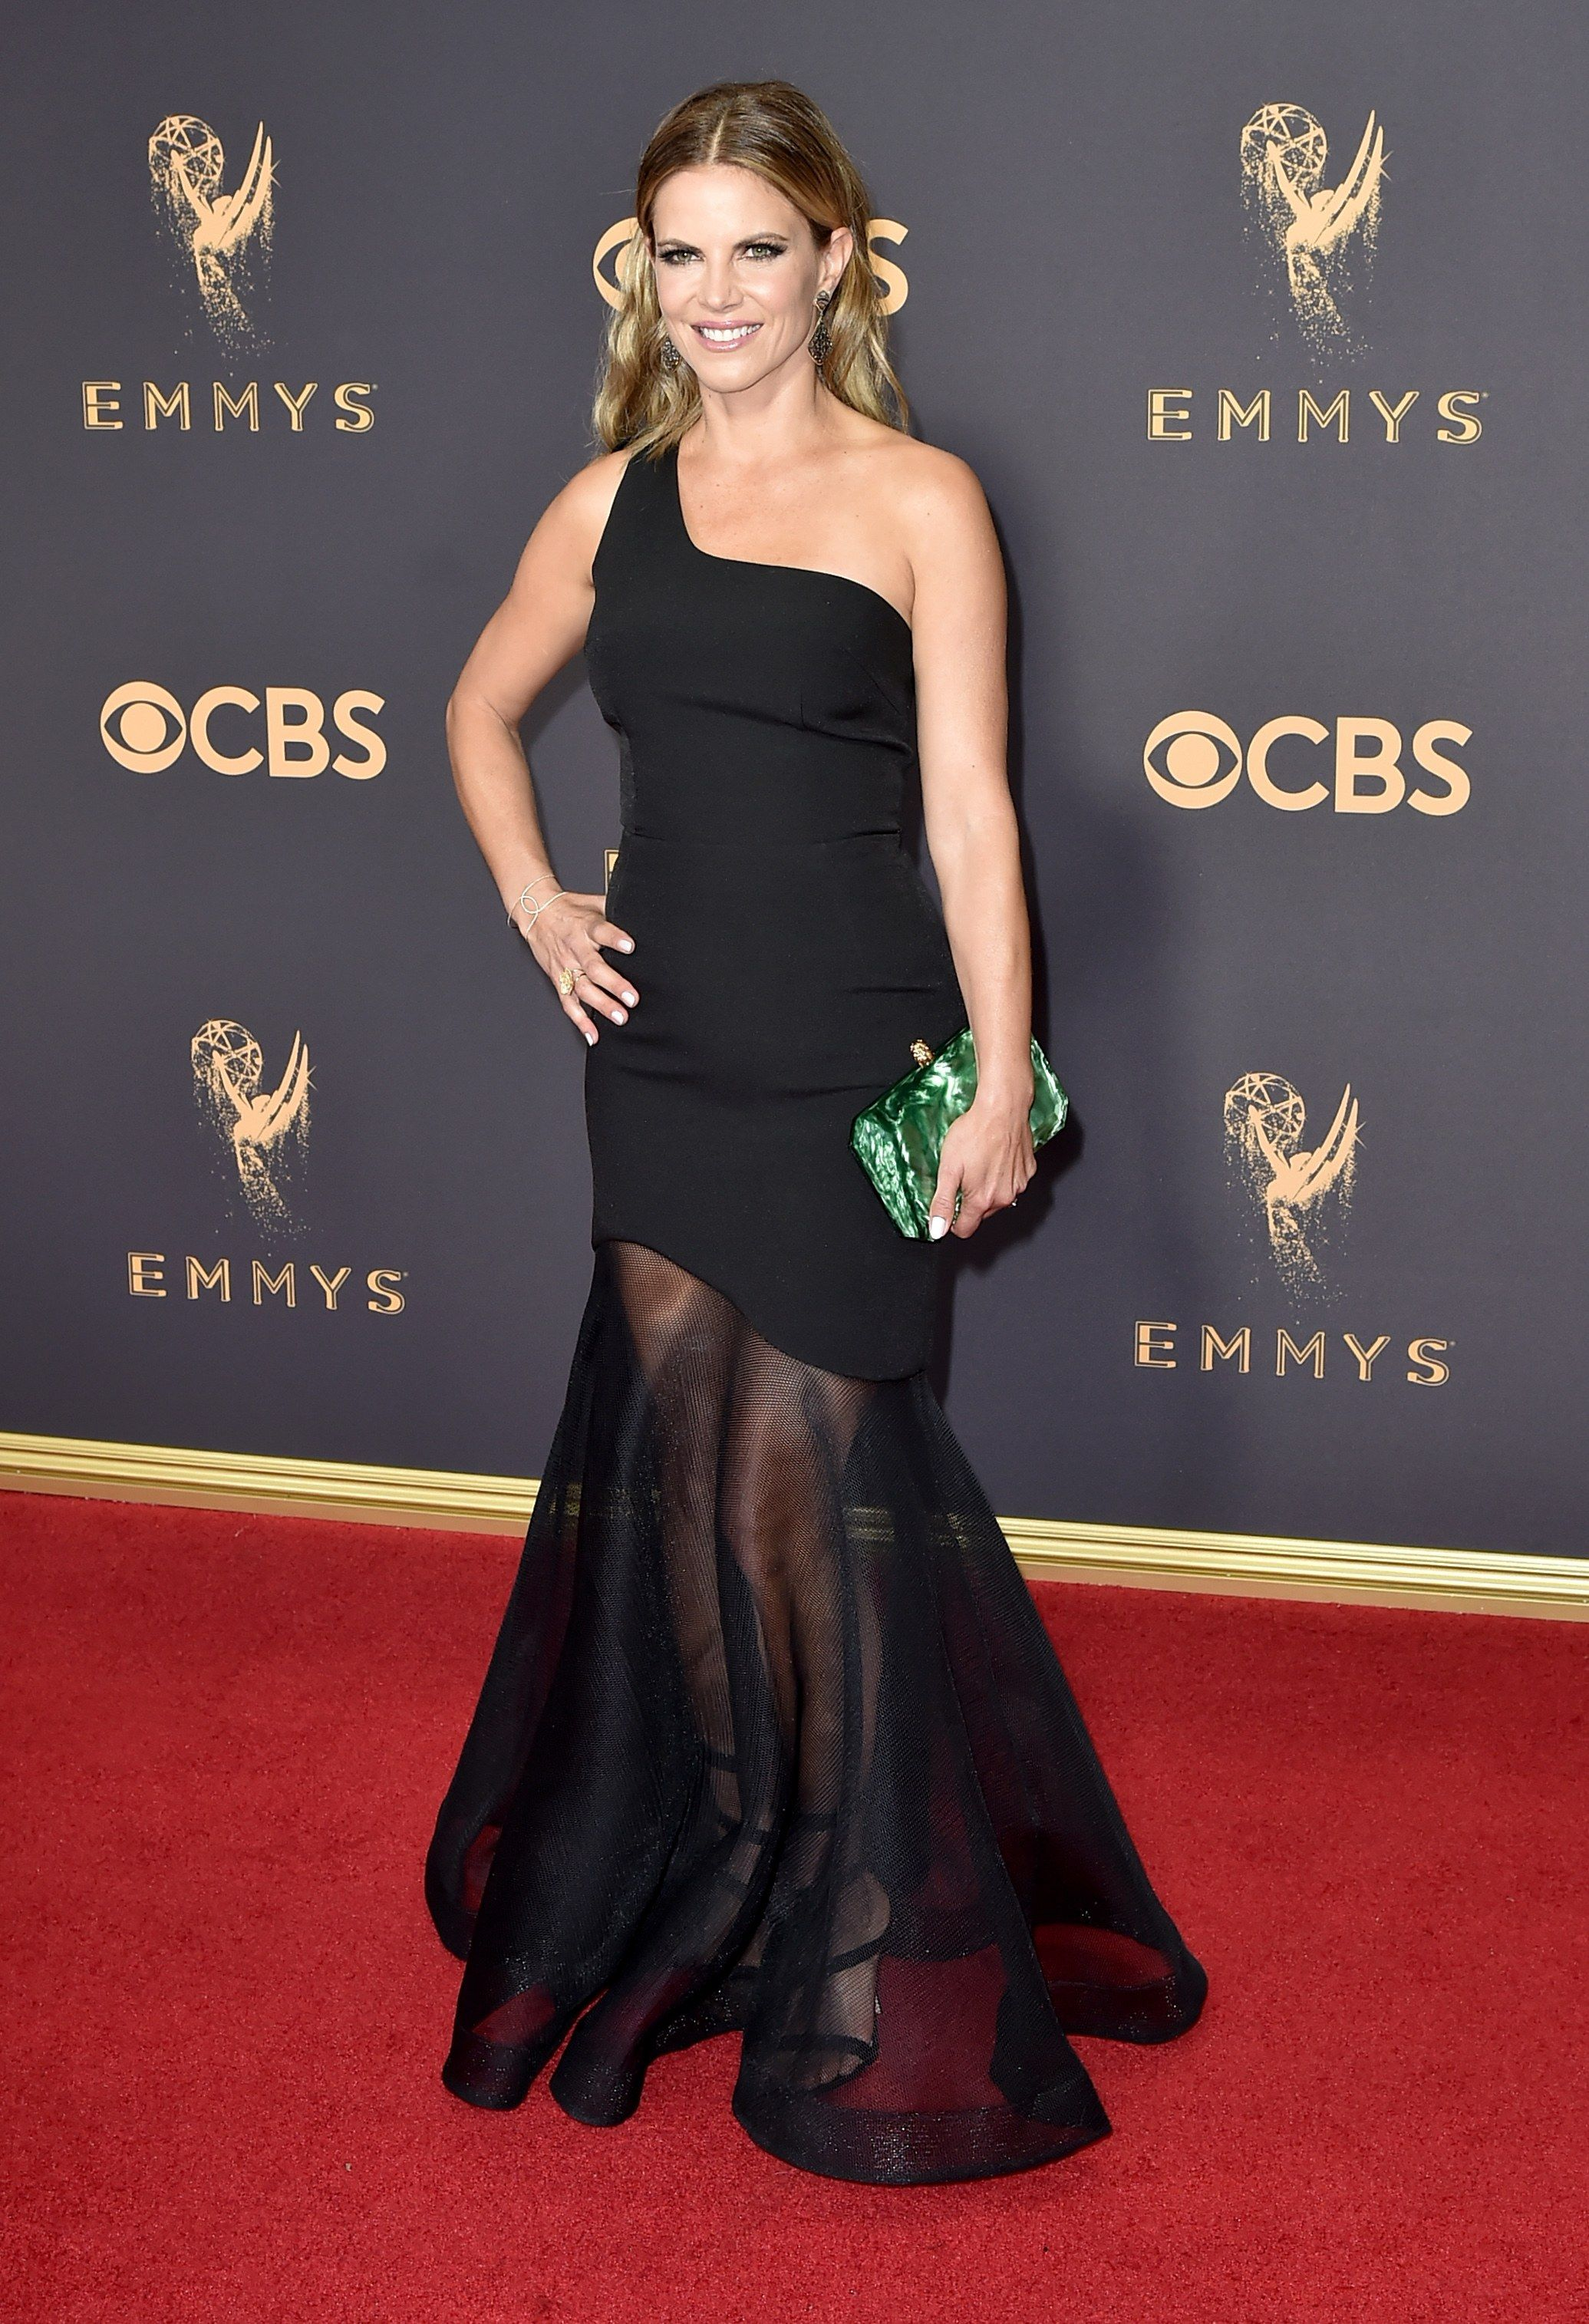 Emmy Awards 2017 Fashion Live From The Red Carpet Celebrity Black Dress Red Carpet Dresses Red Carpet Fashion [ 3029 x 2071 Pixel ]